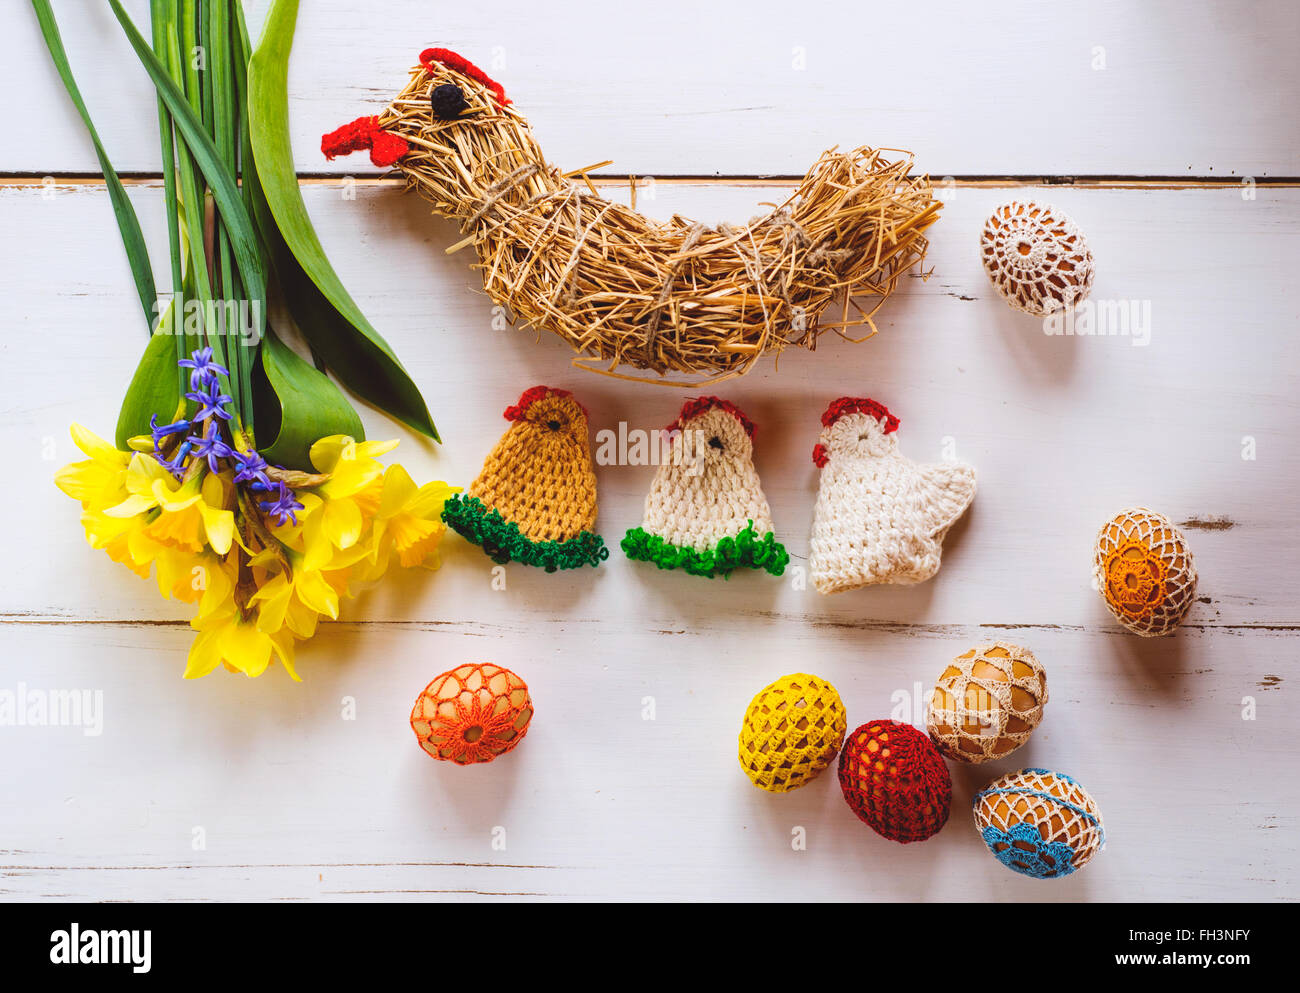 Crocheted Easter eggs, chickens and daffodils, wooden background - Stock Image